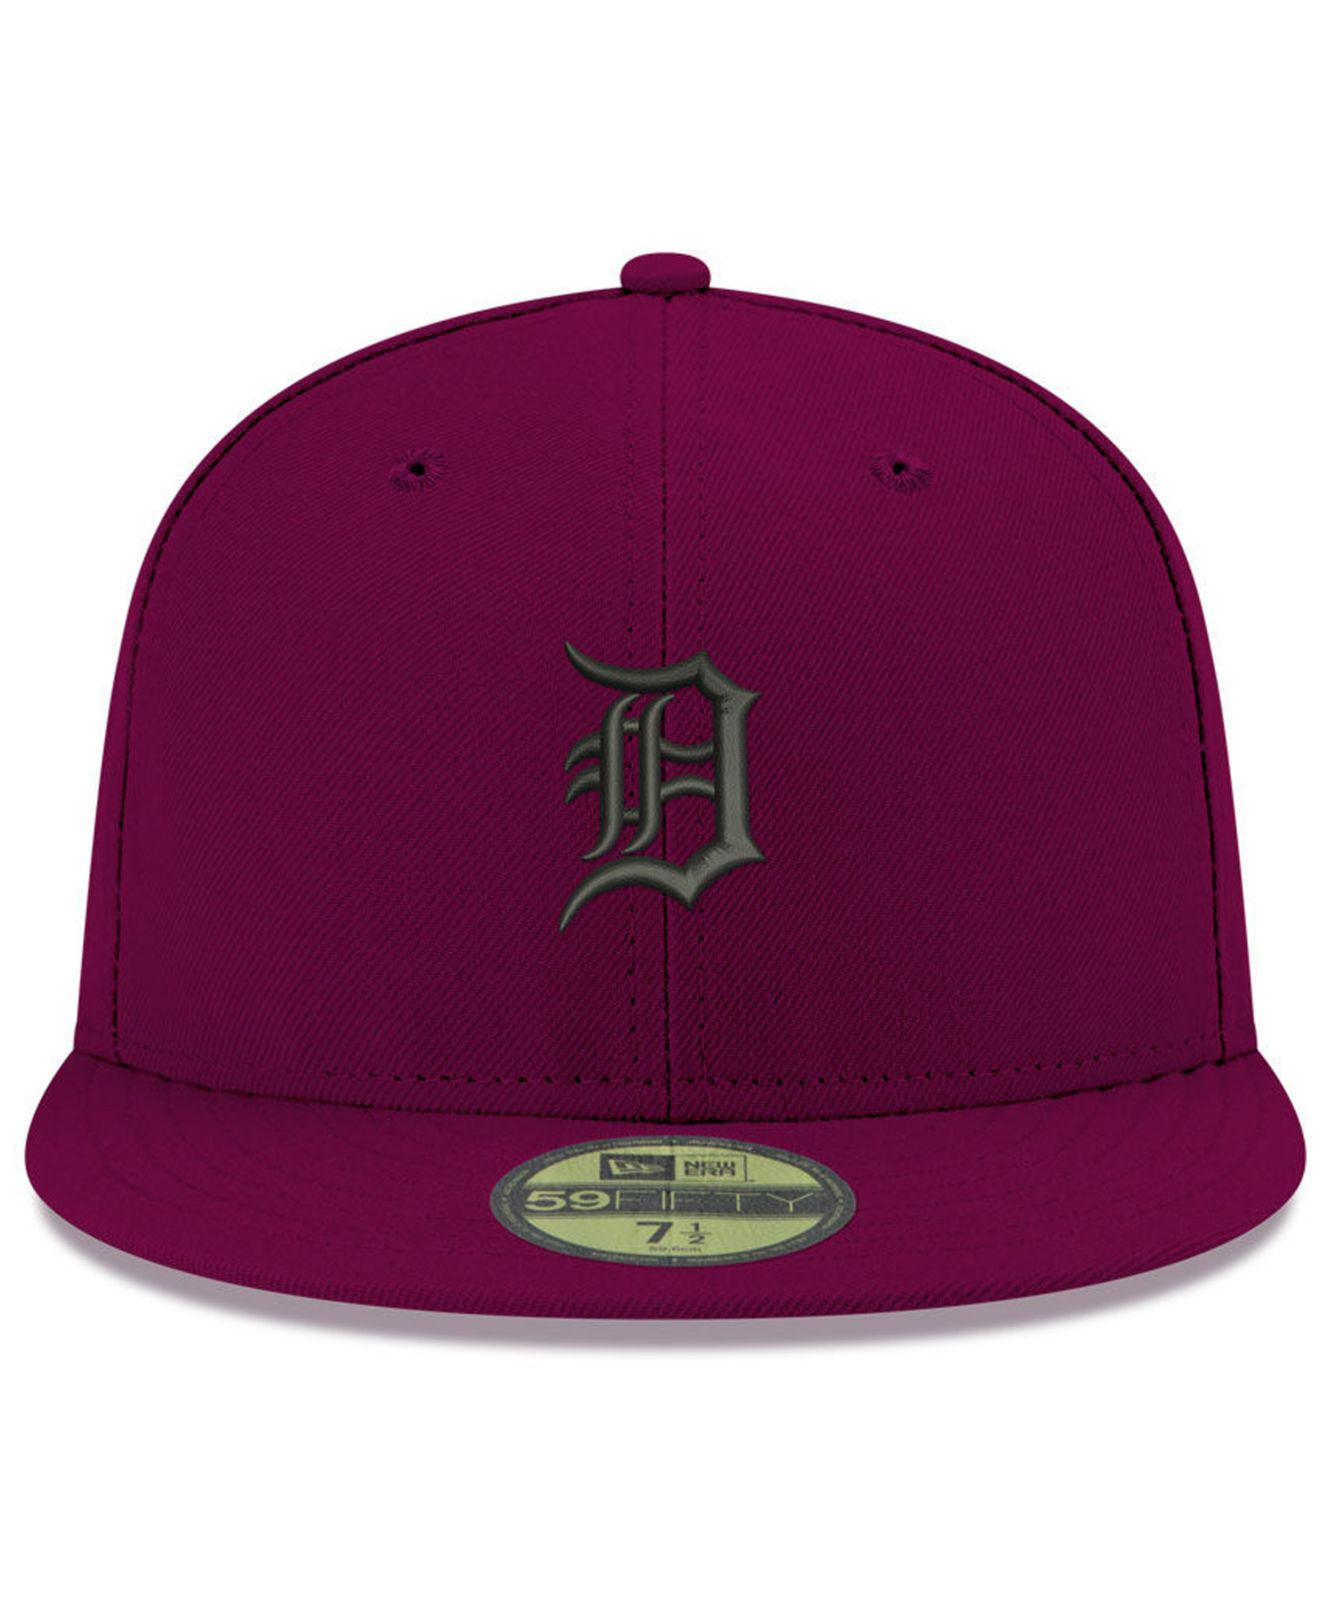 differently 4890a 2bd2d Lyst - KTZ Detroit Tigers Reverse C-dub 59fifty Fitted Cap in Purple for Men